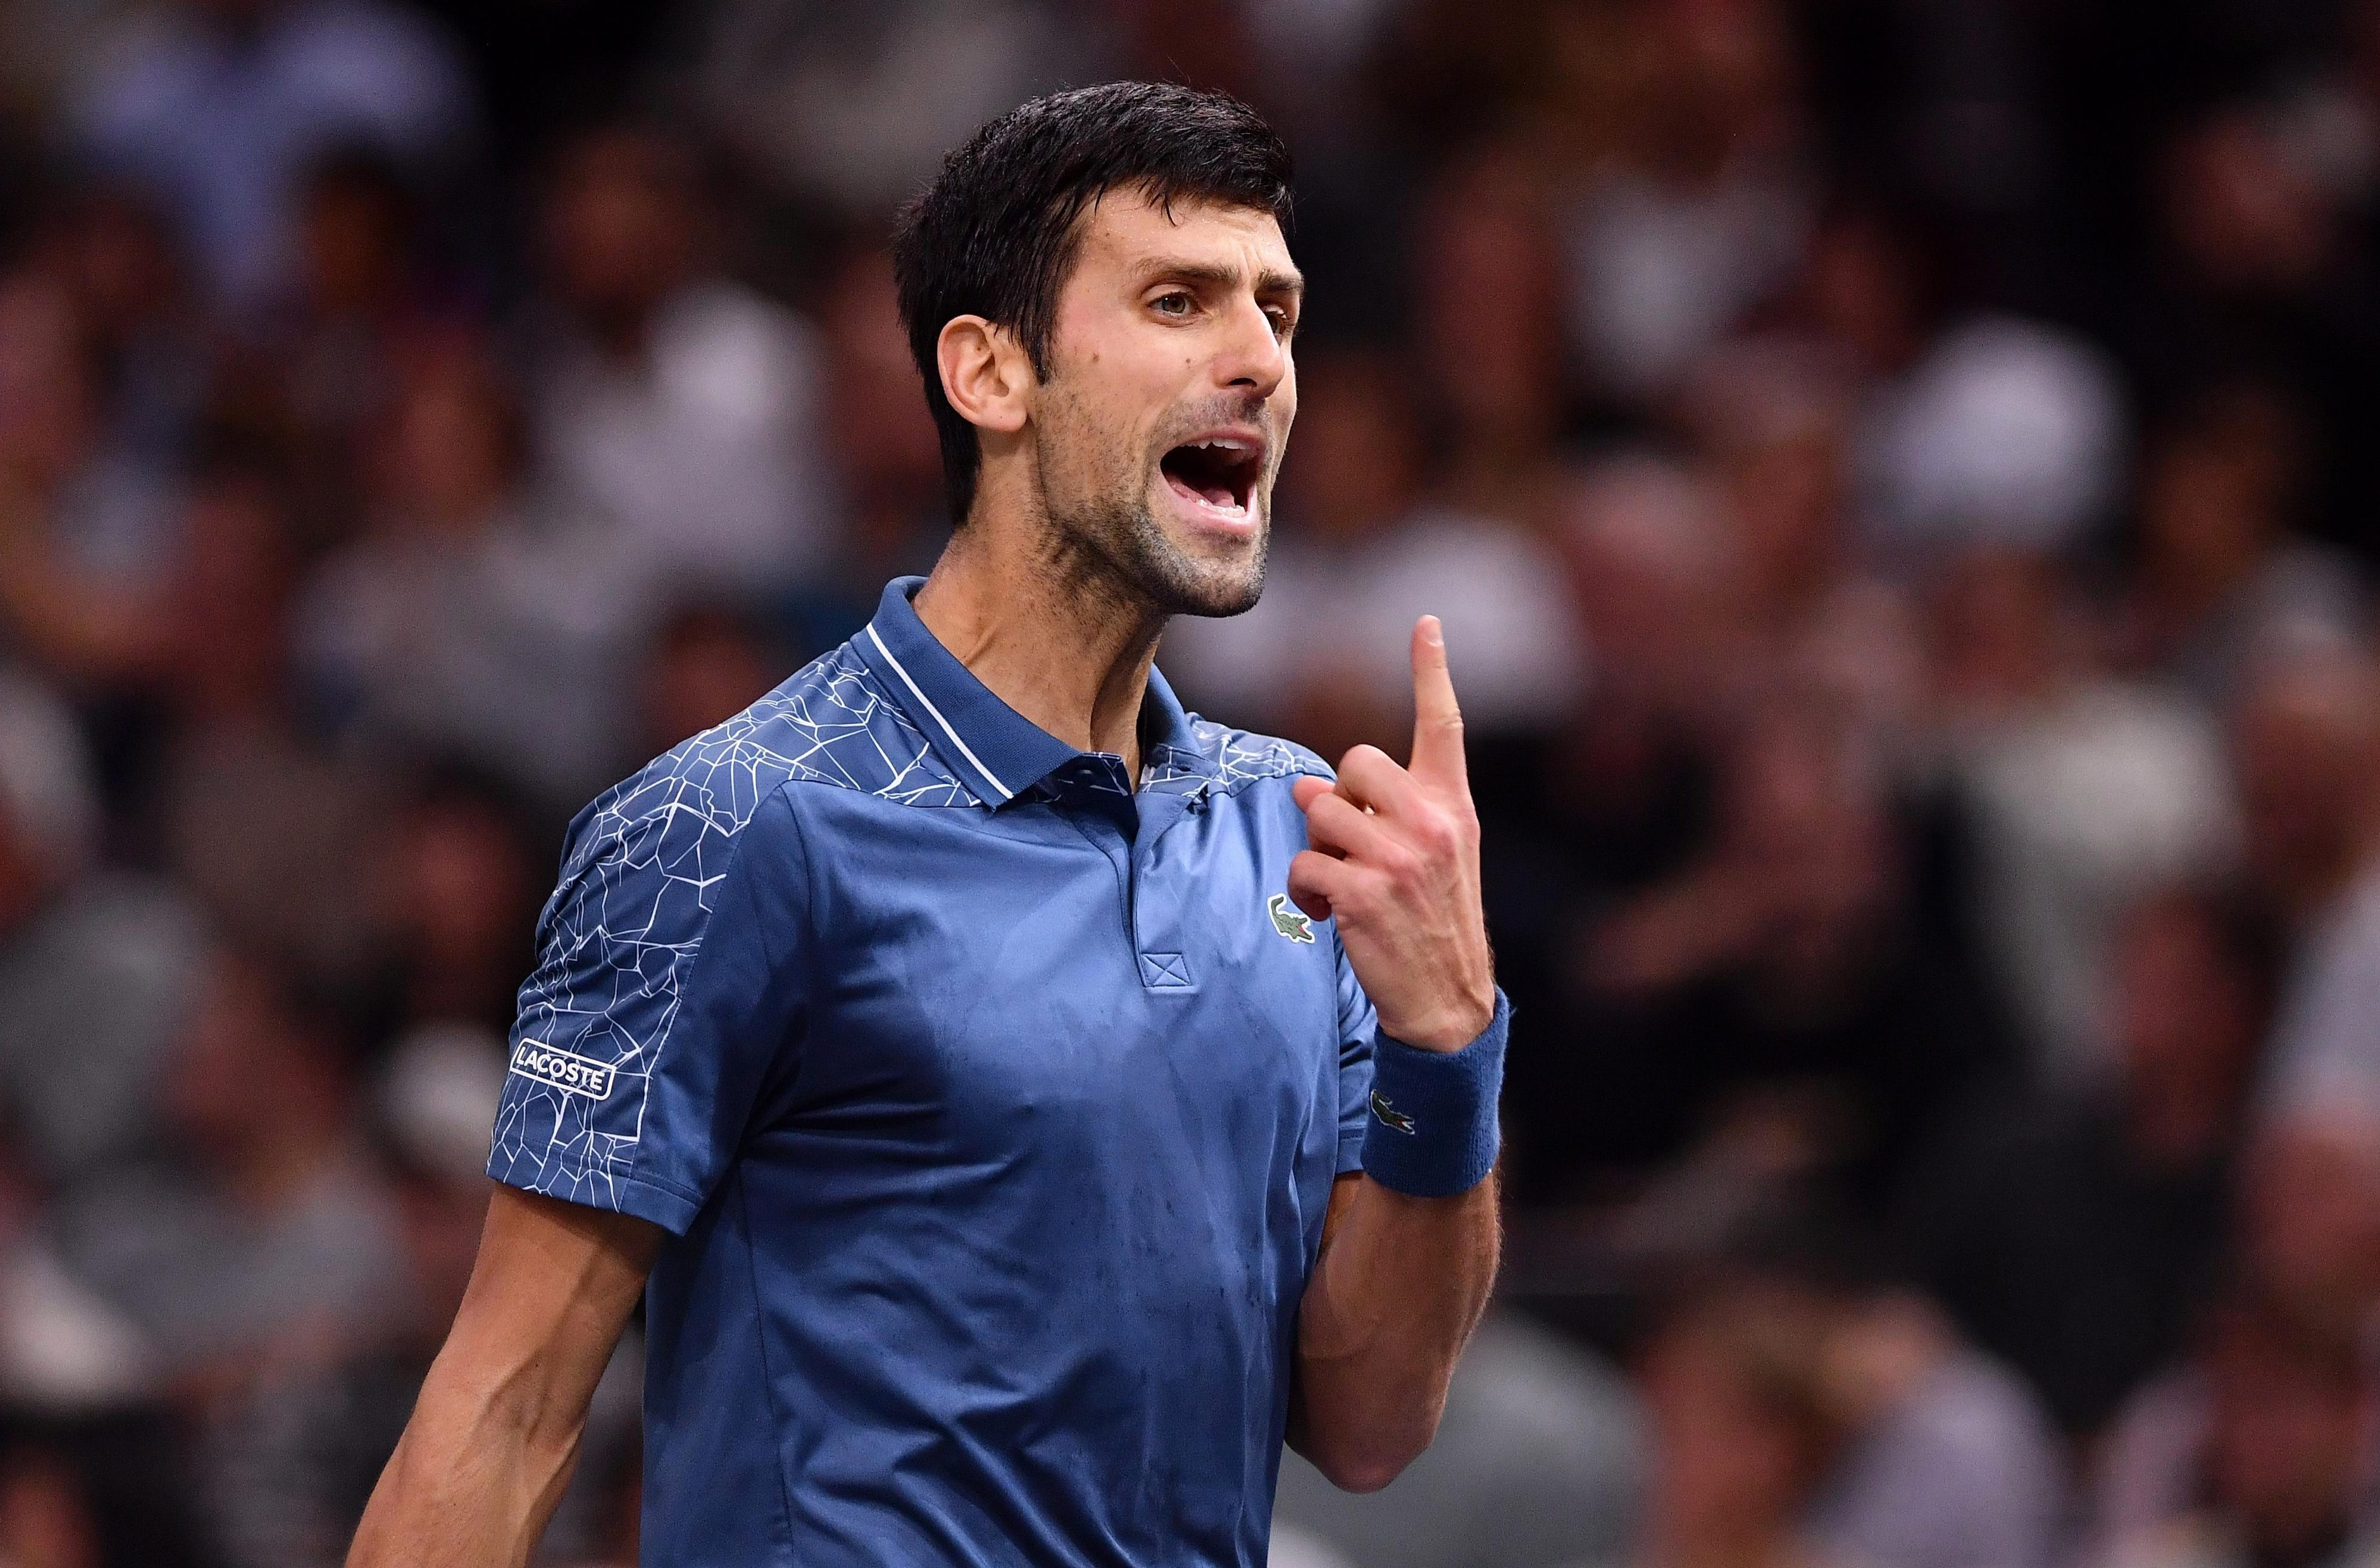 Novak Djokovic was left stunned after being thrashed in the Paris Masters final